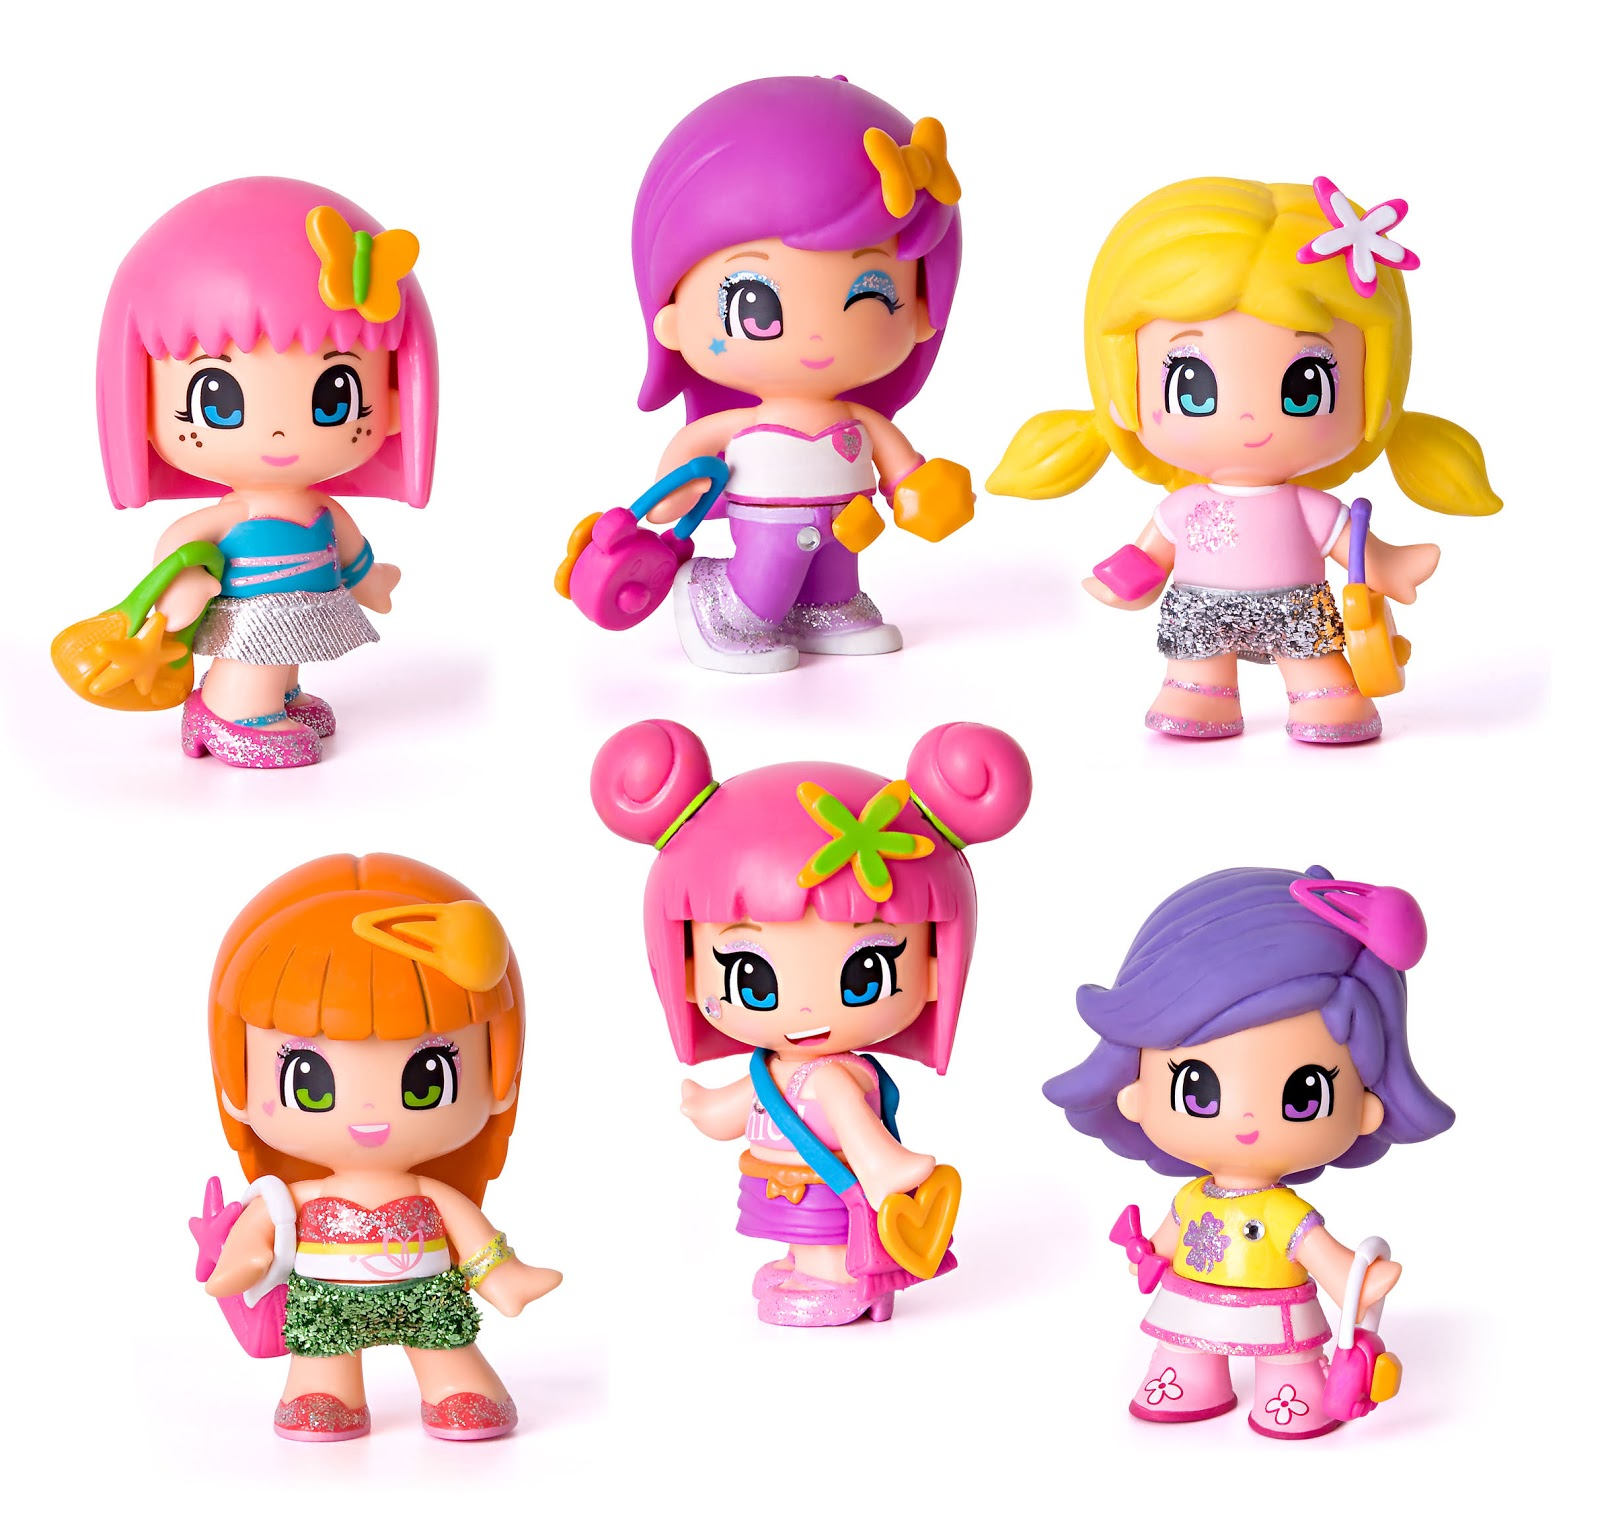 2012 Holiday Gift Guide Pinypon Fun Toys for Girls